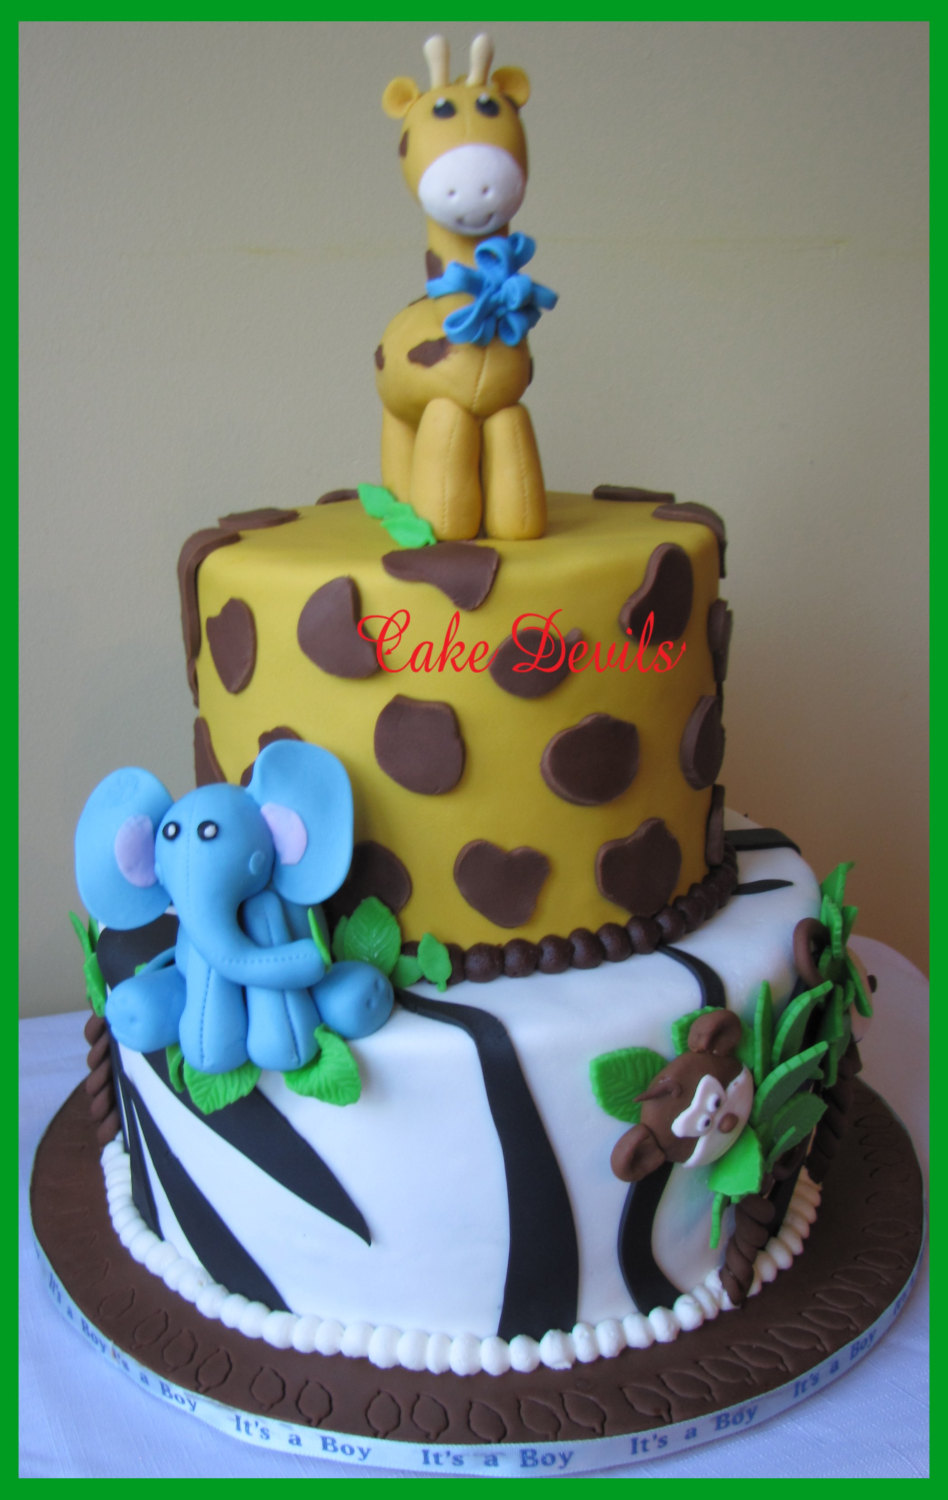 Fondant elephant elephant cake topper elephant cake for Animal cake decoration